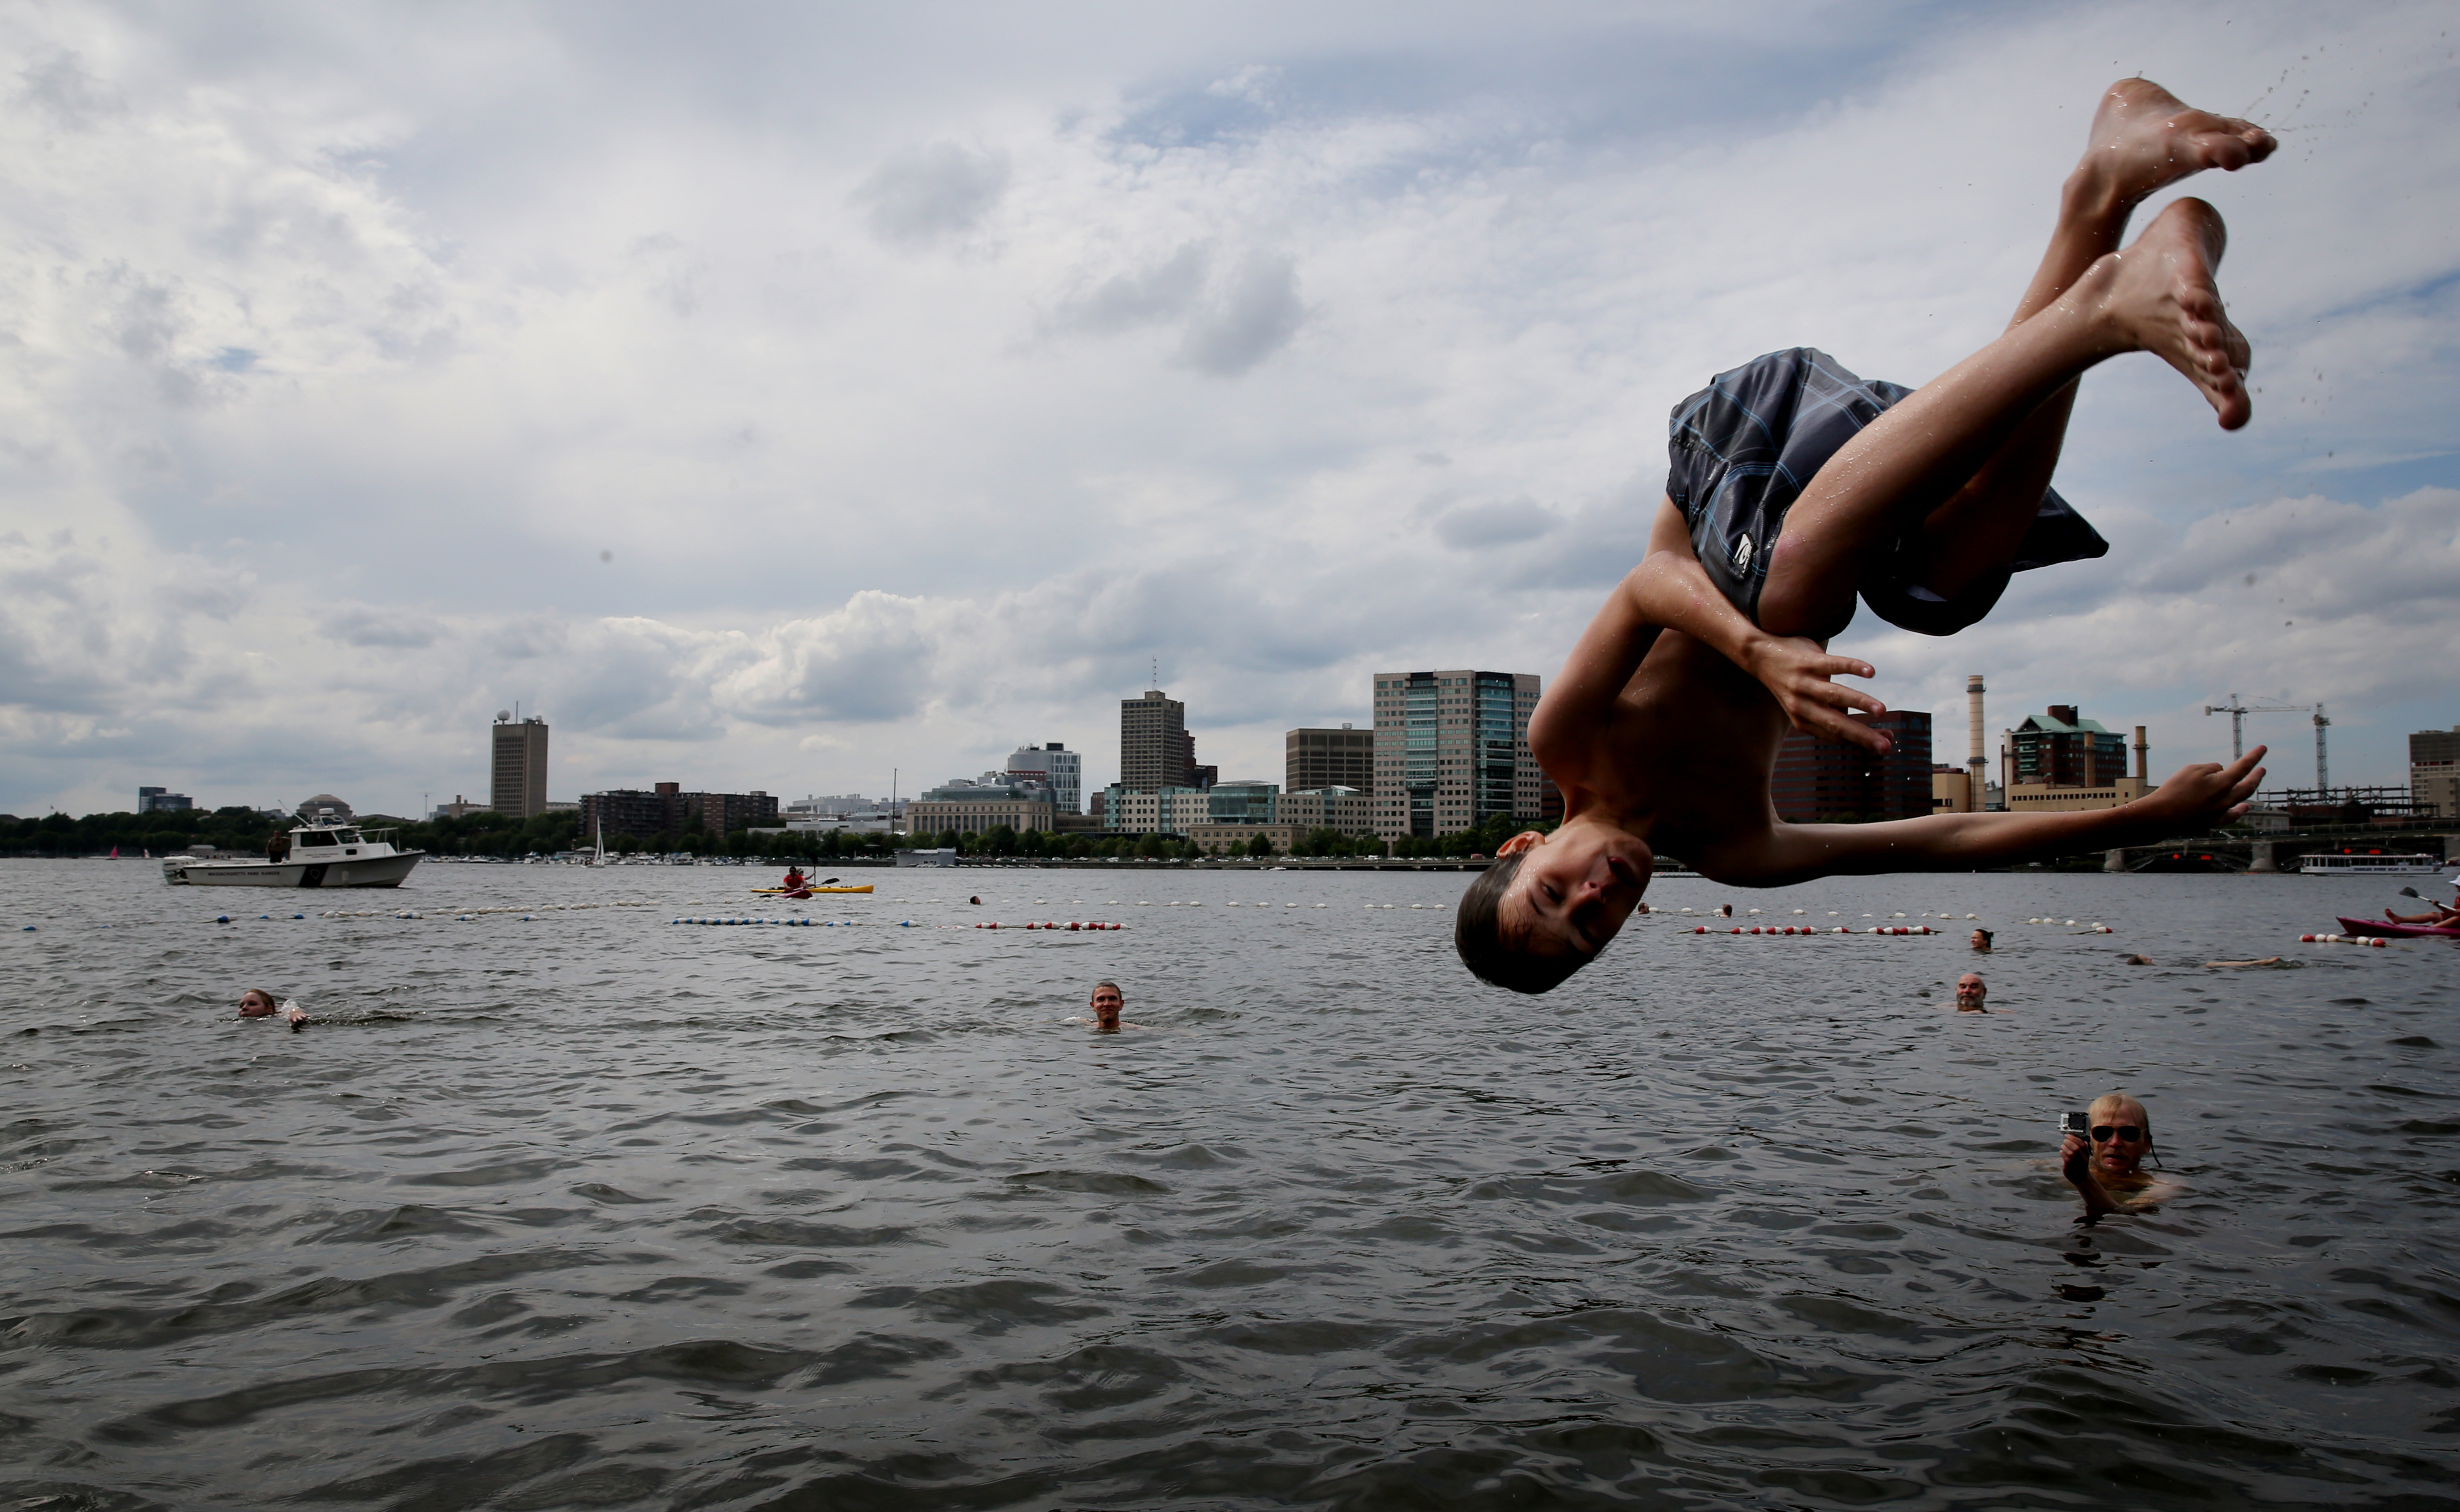 517174c603 Grab your swimsuits: Charles River Swimming Day is coming in June - The  Boston Globe